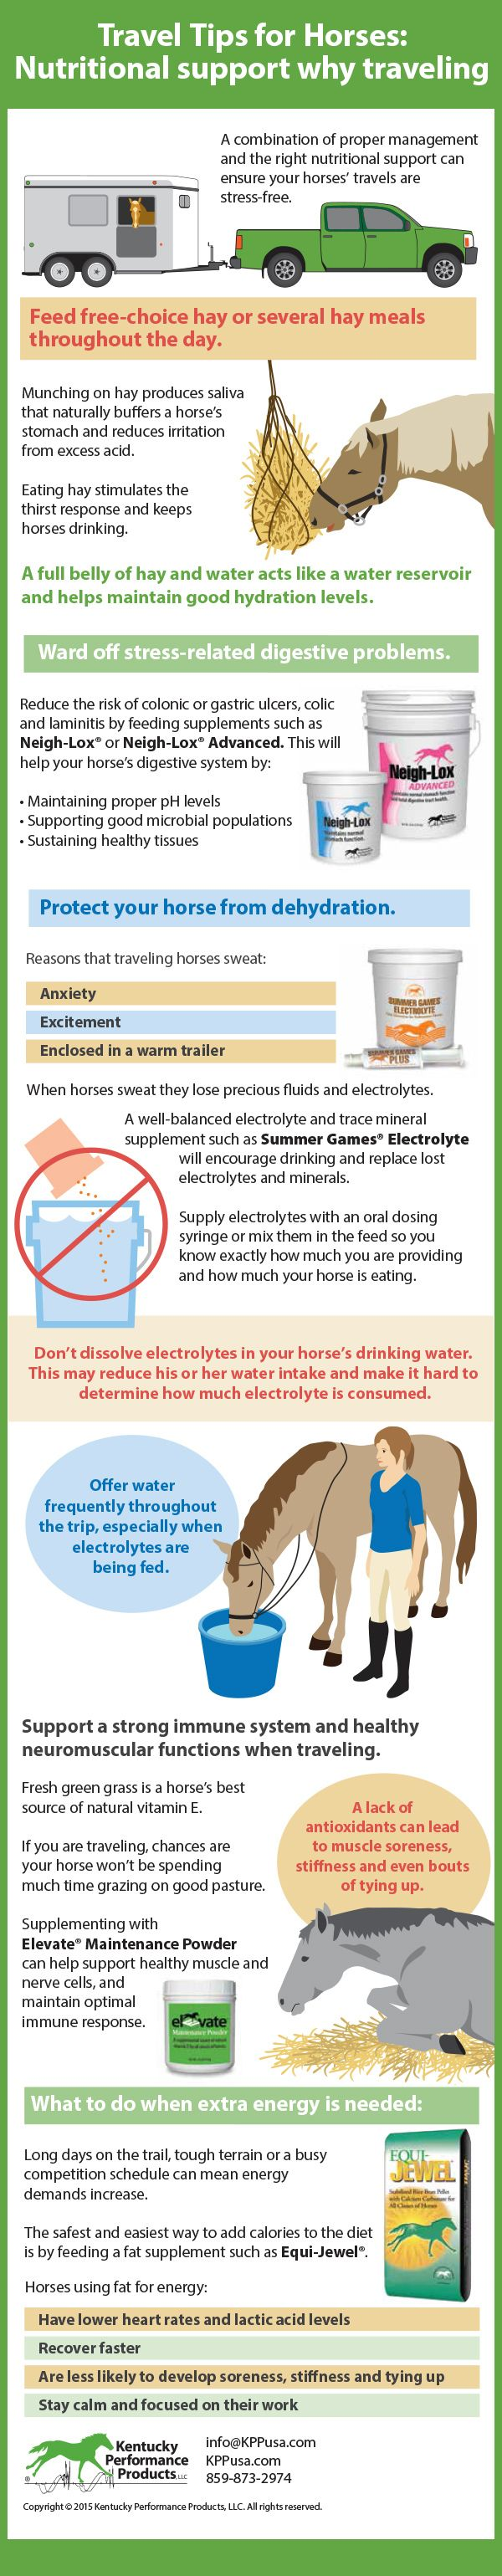 Travel Tips for Horses: Nutritional Support